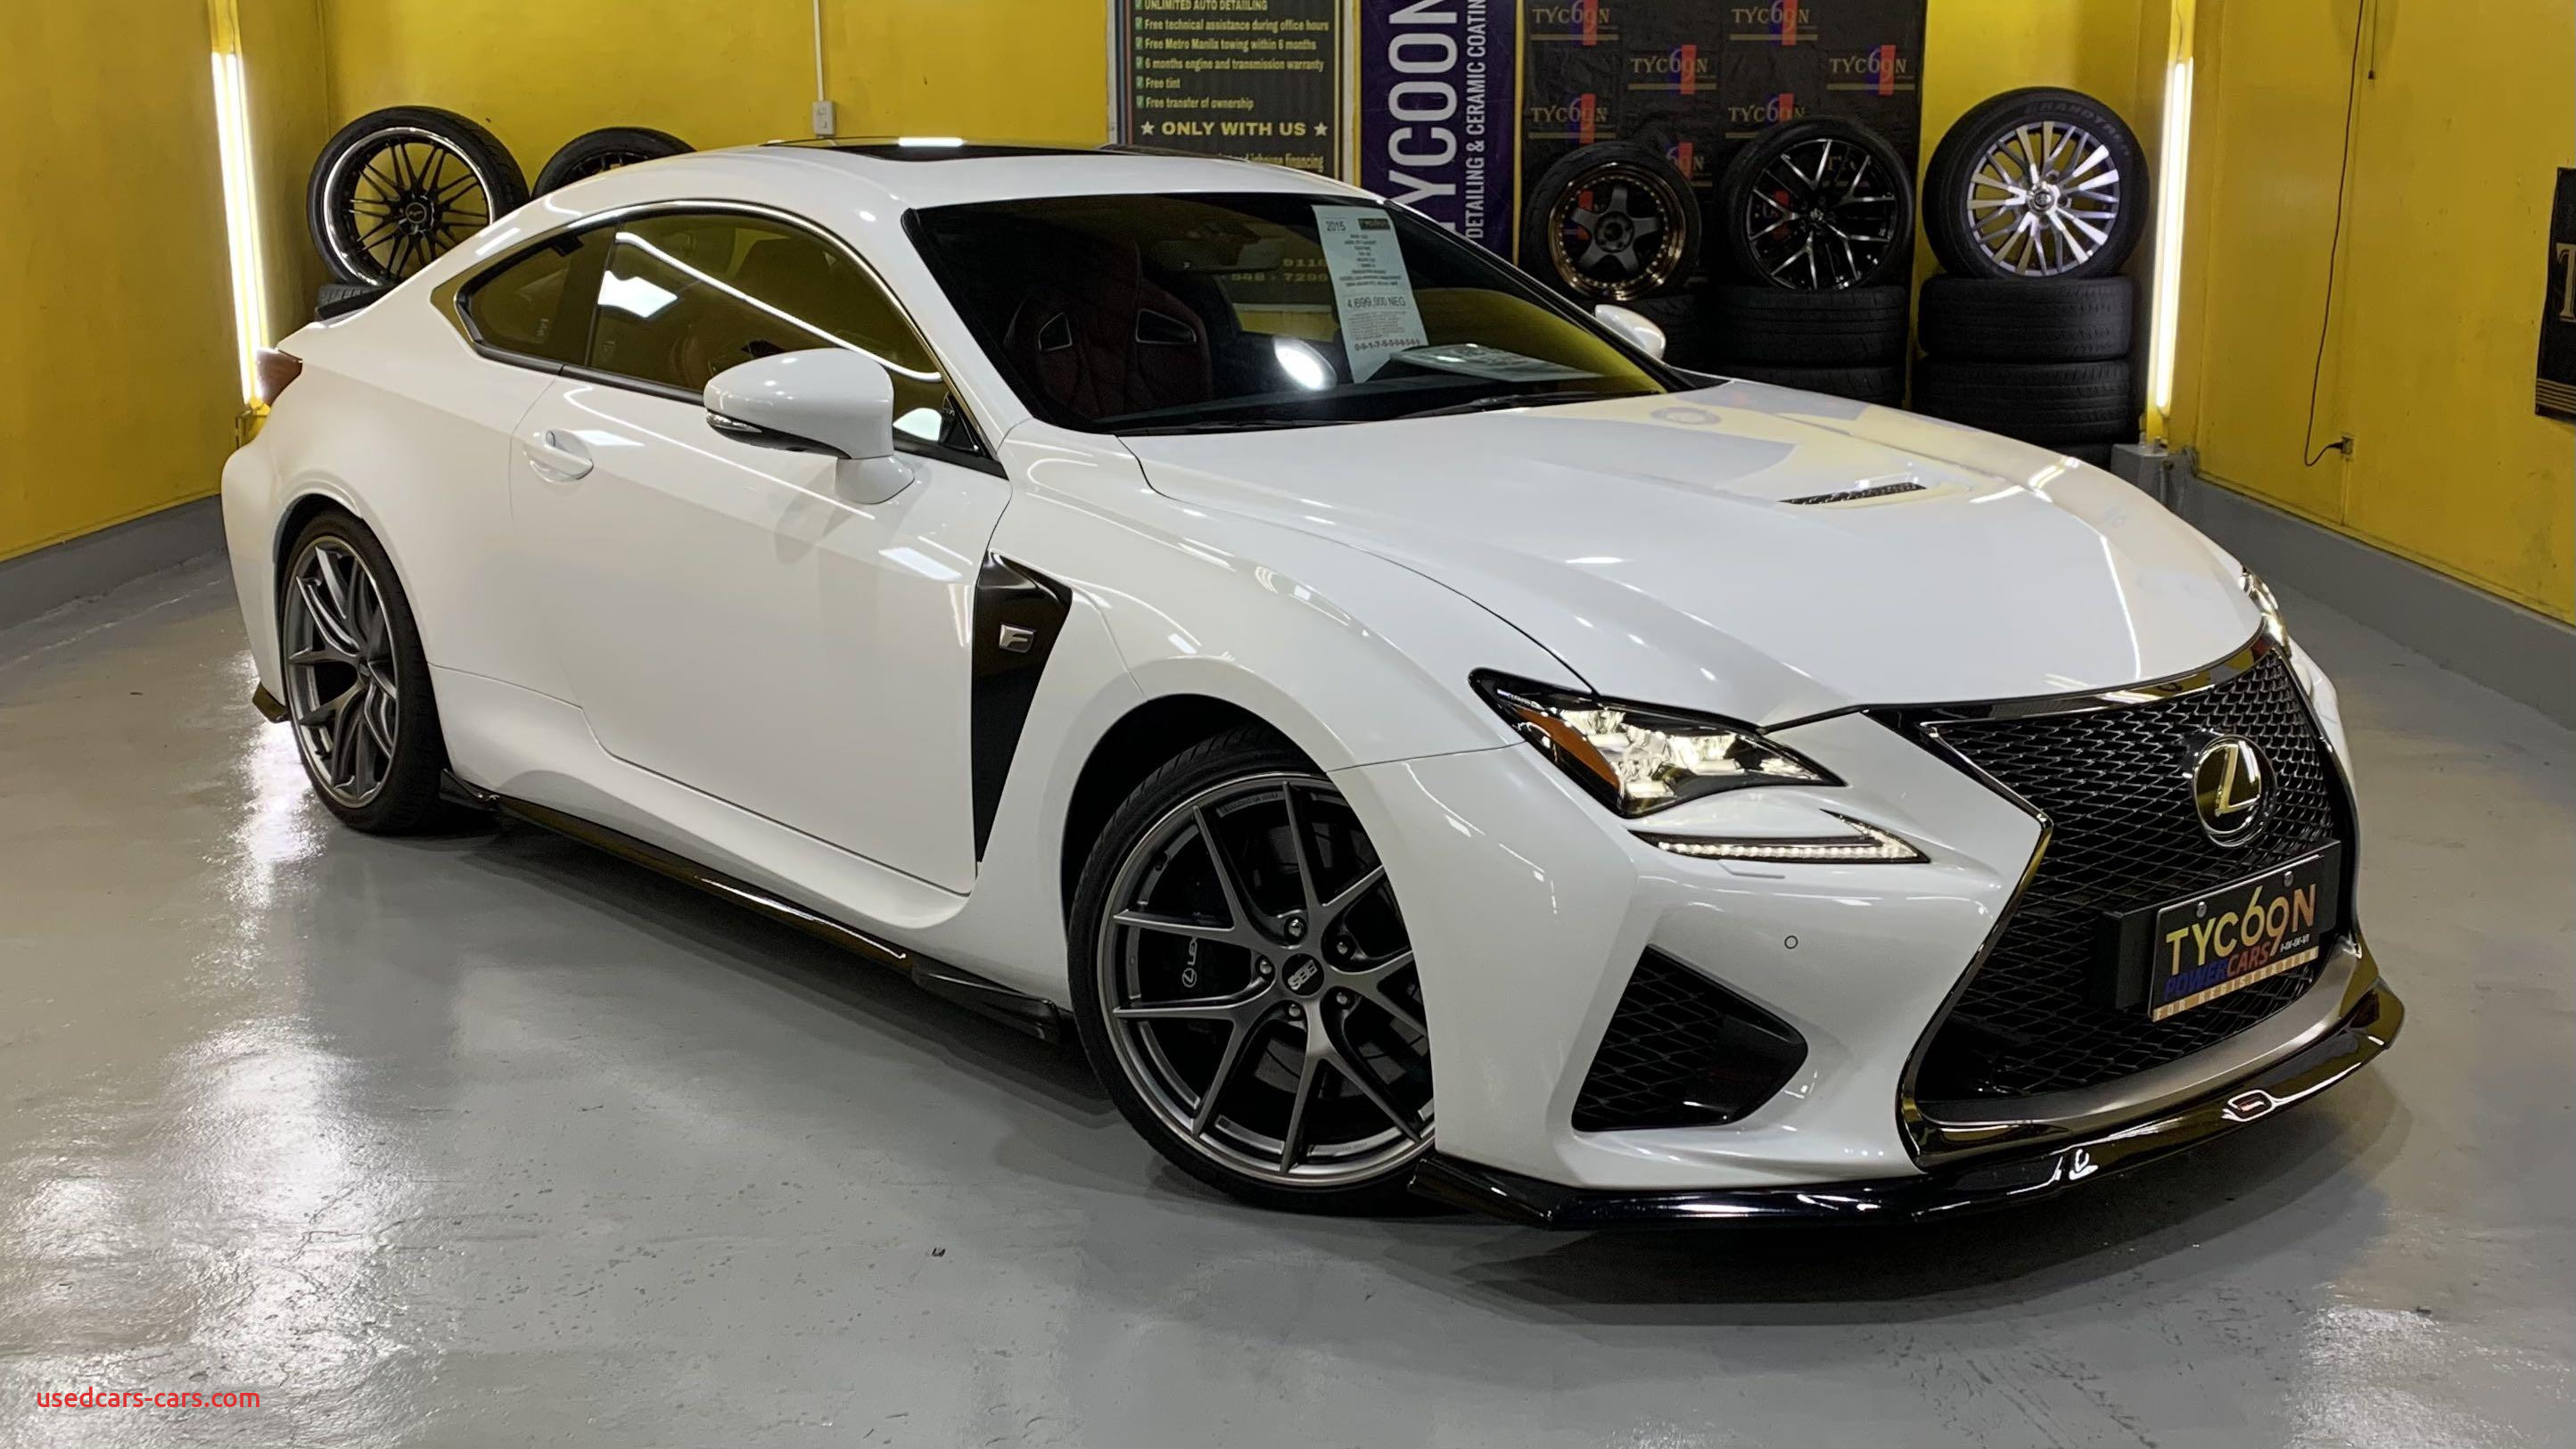 Used Cars for Sale Finance Inspirational Lexus Rcf Coupe Auto Cars for Sale Used Cars On Carousell